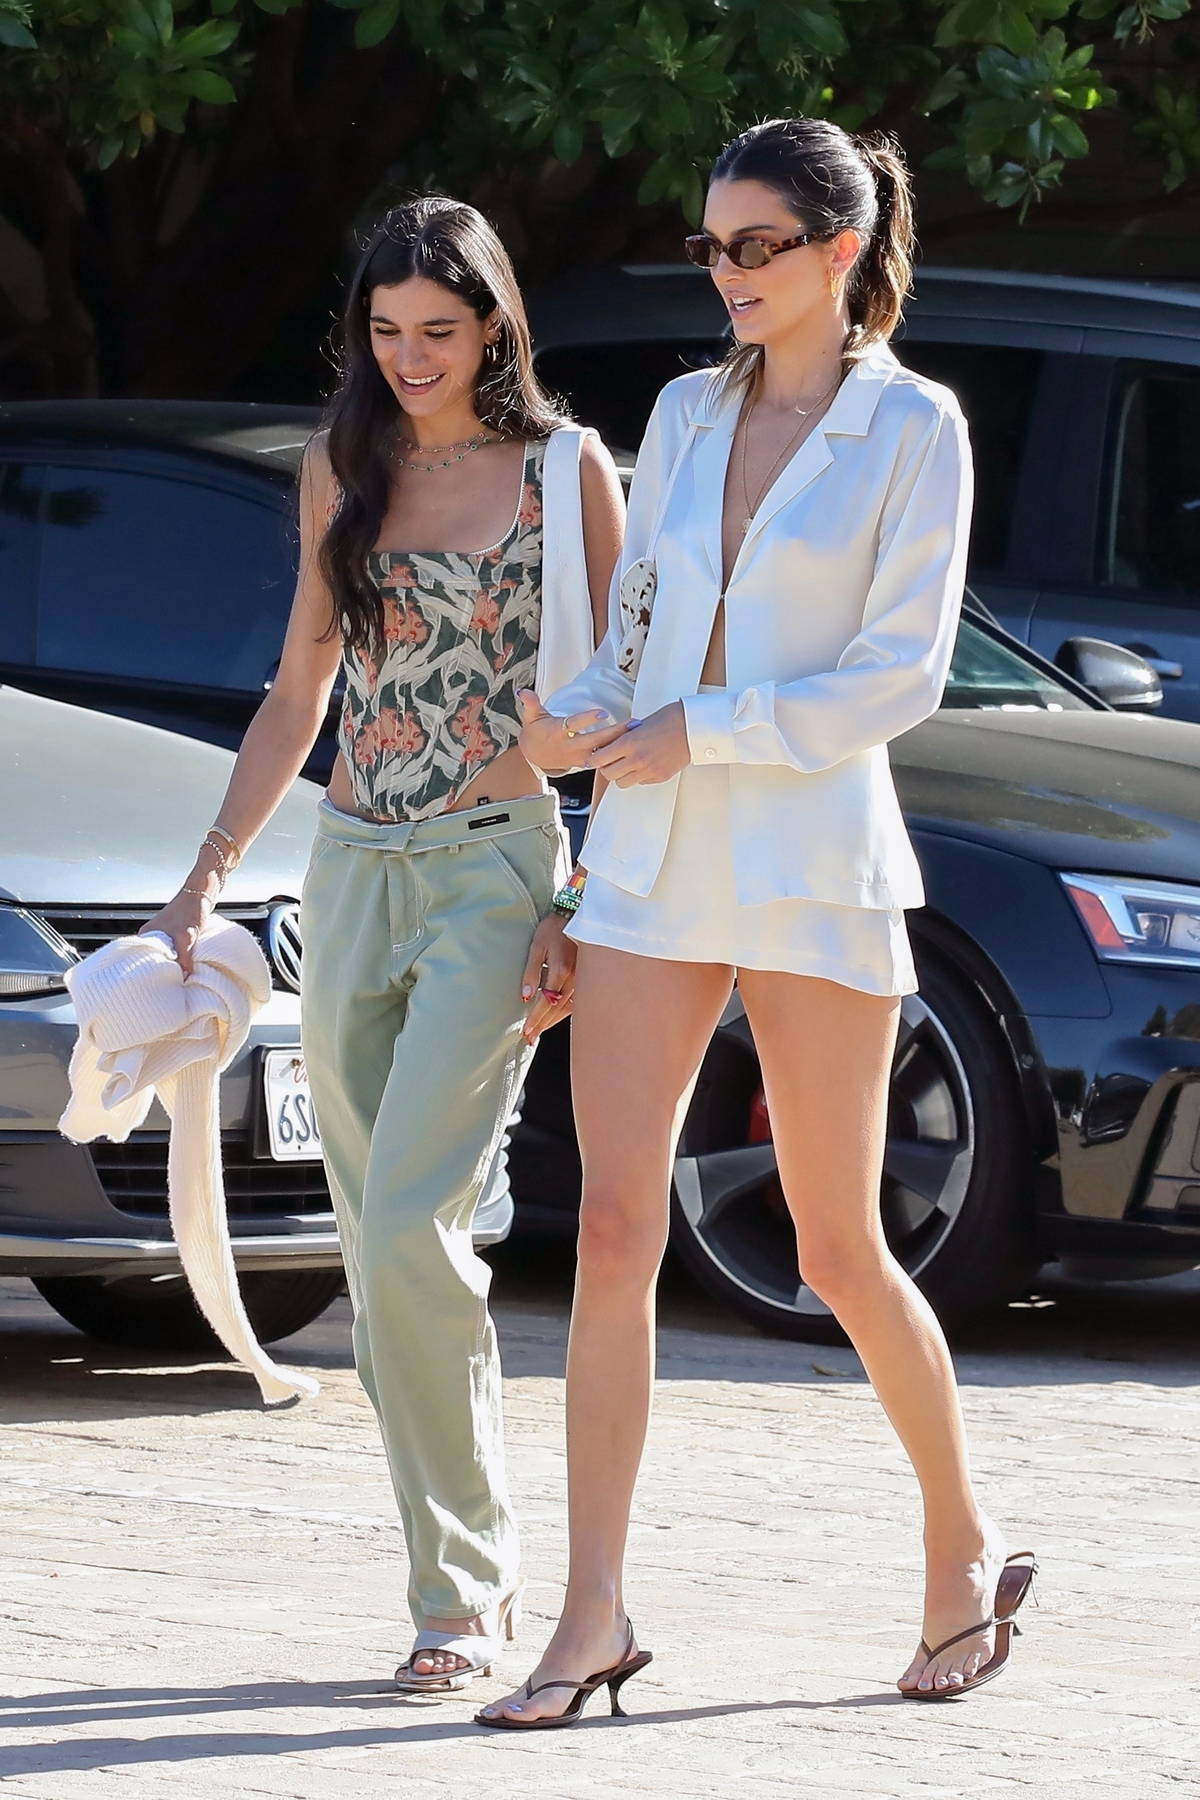 Kendall Jenner shows off her supermodel legs in a white mini skirt while out for lunch with friends in Malibu, California